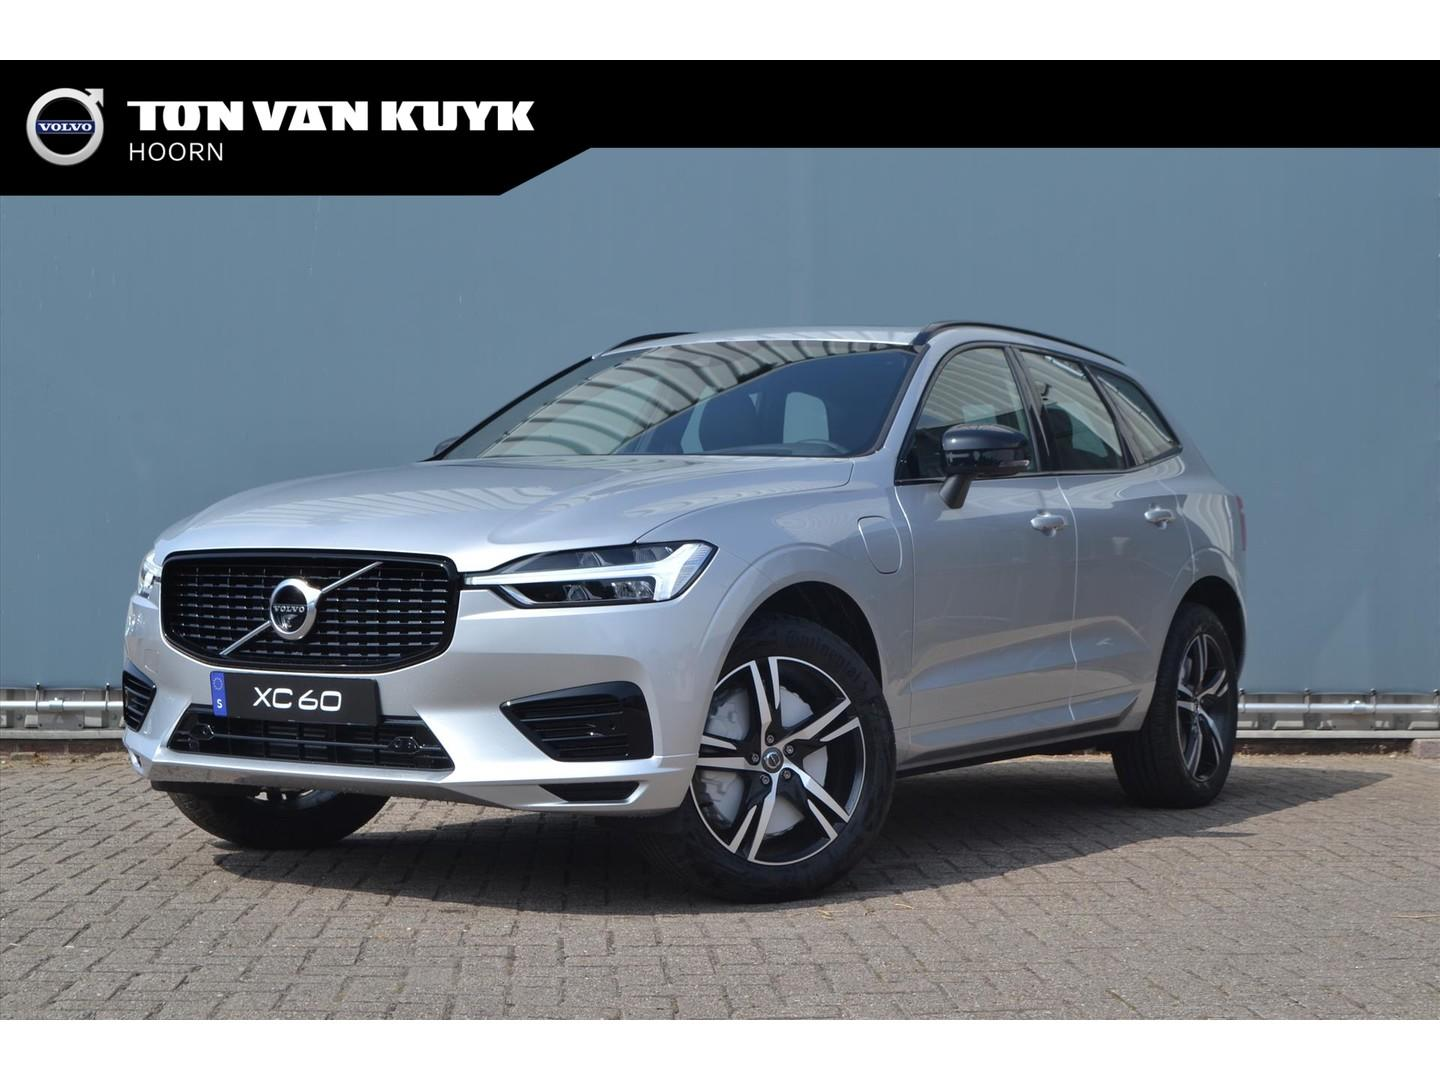 Volvo Xc60 New t6 340 pk plug in hybrid r-design automaat lounge line